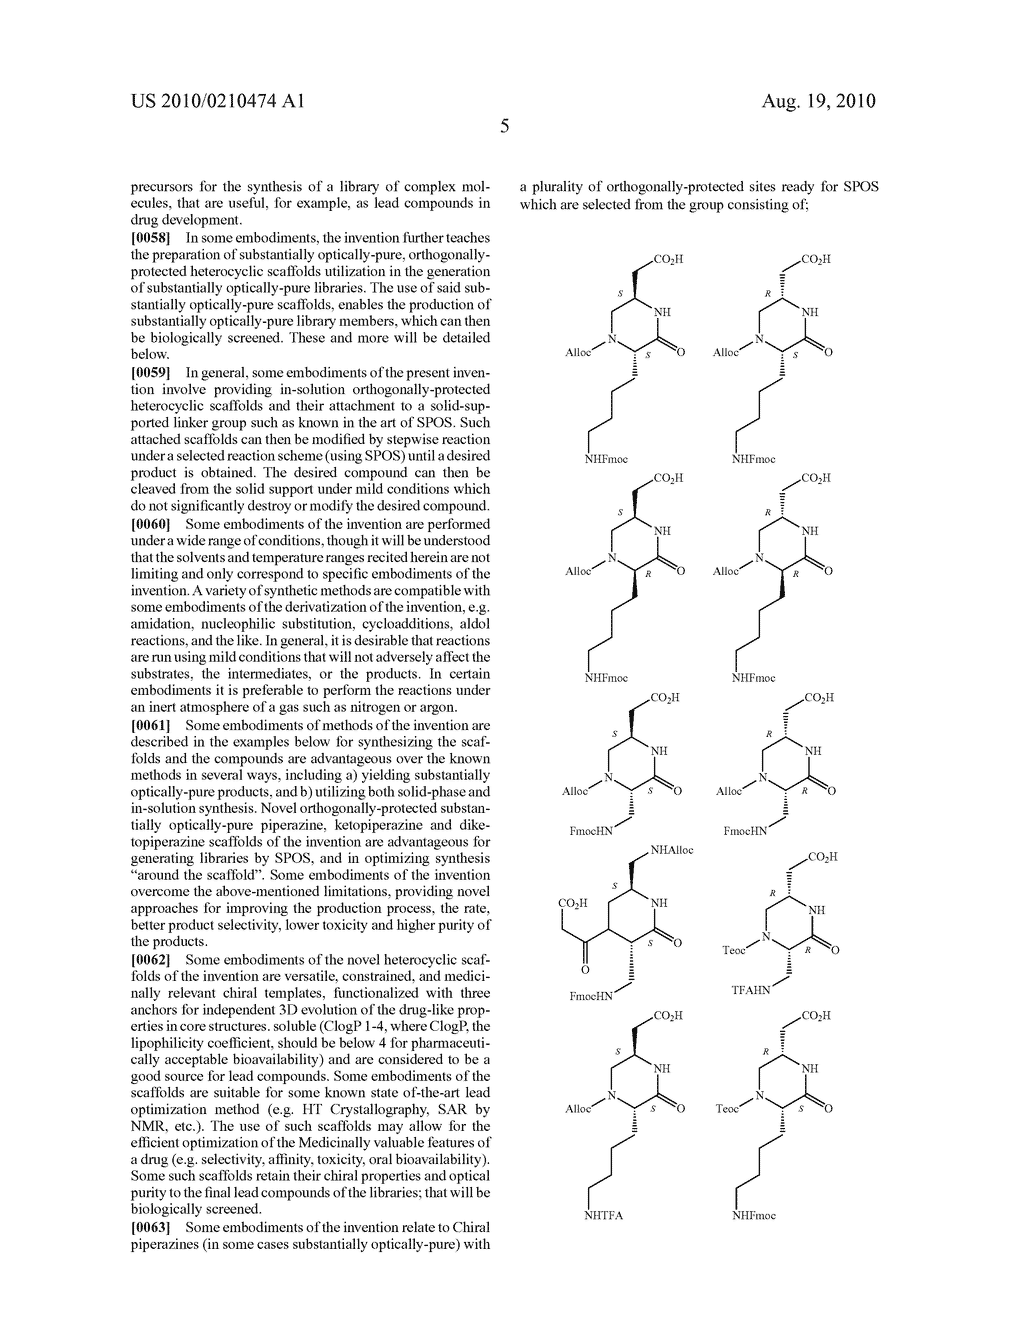 HETEROCYCLIC SCAFFOLDS USEFUL FOR PREPARATION OF COMBINATORIAL LIBRARIES, LIBRARIES AND METHODS FOR PREPARATION THEREOF - diagram, schematic, and image 17